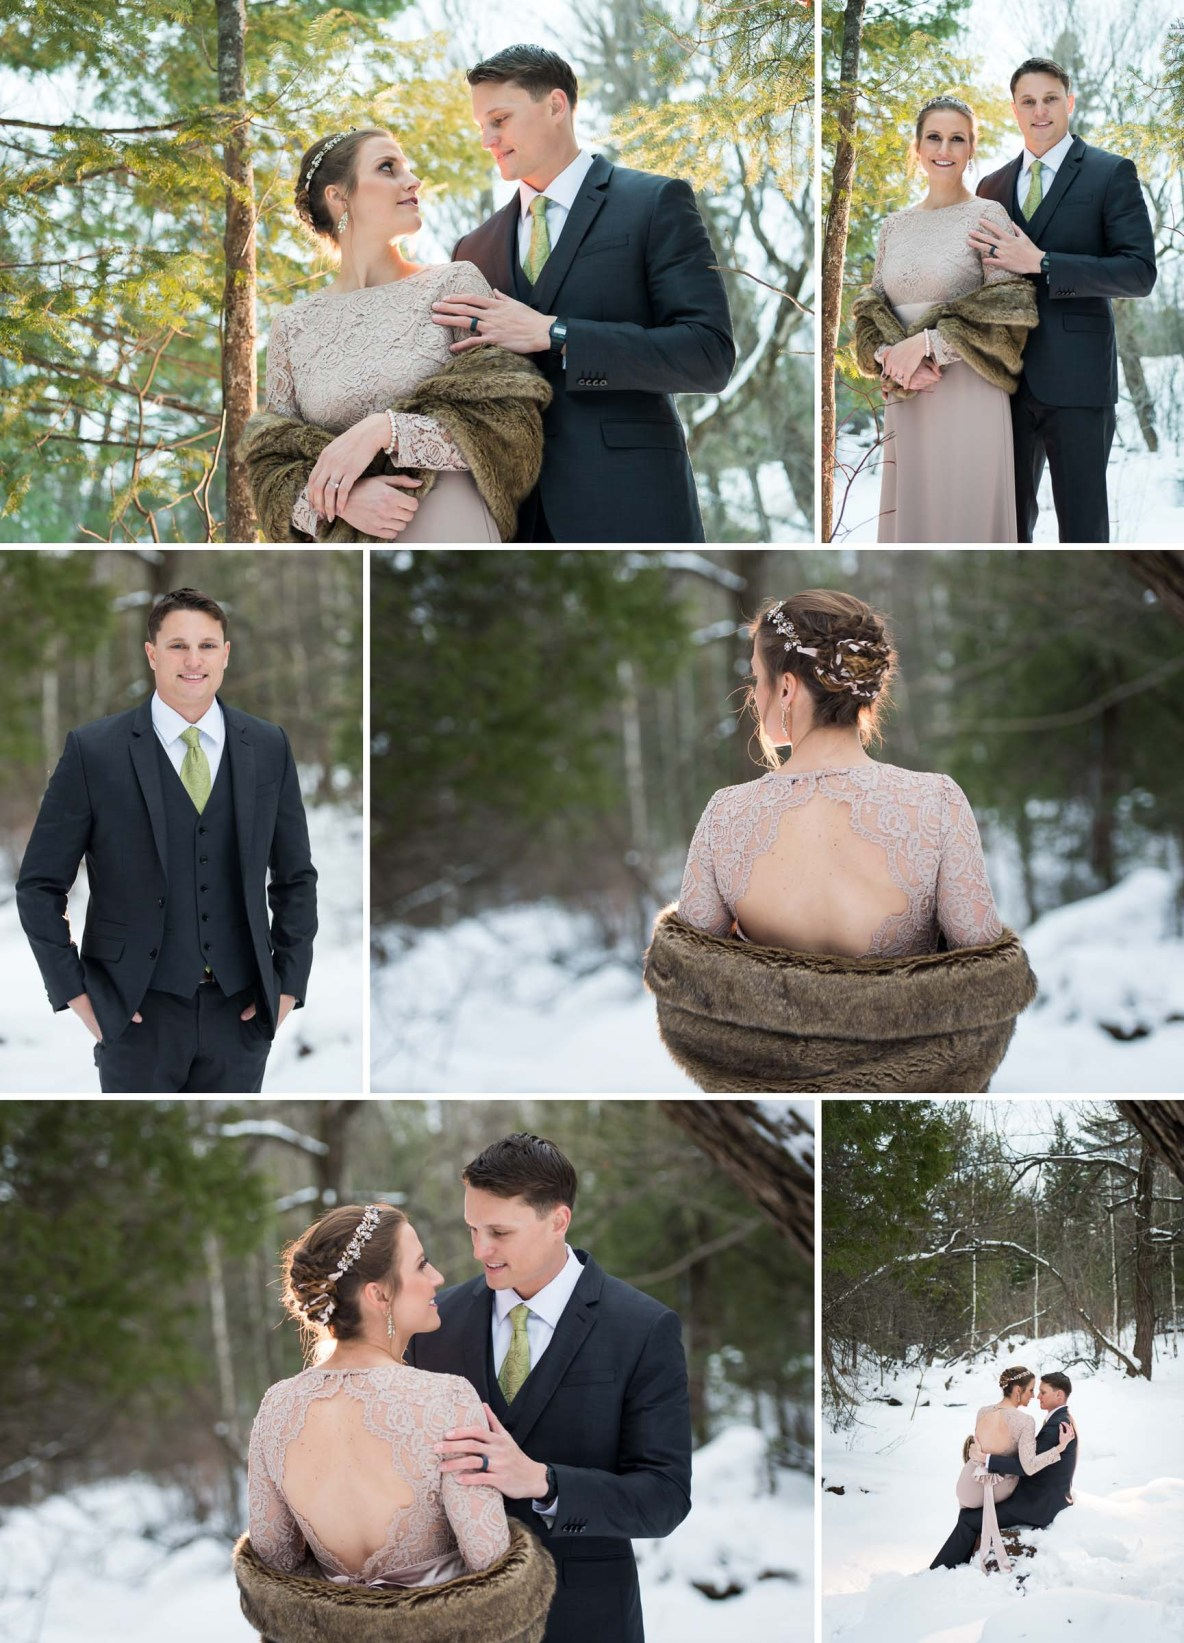 Winter wedding photos in Duluth, MN.